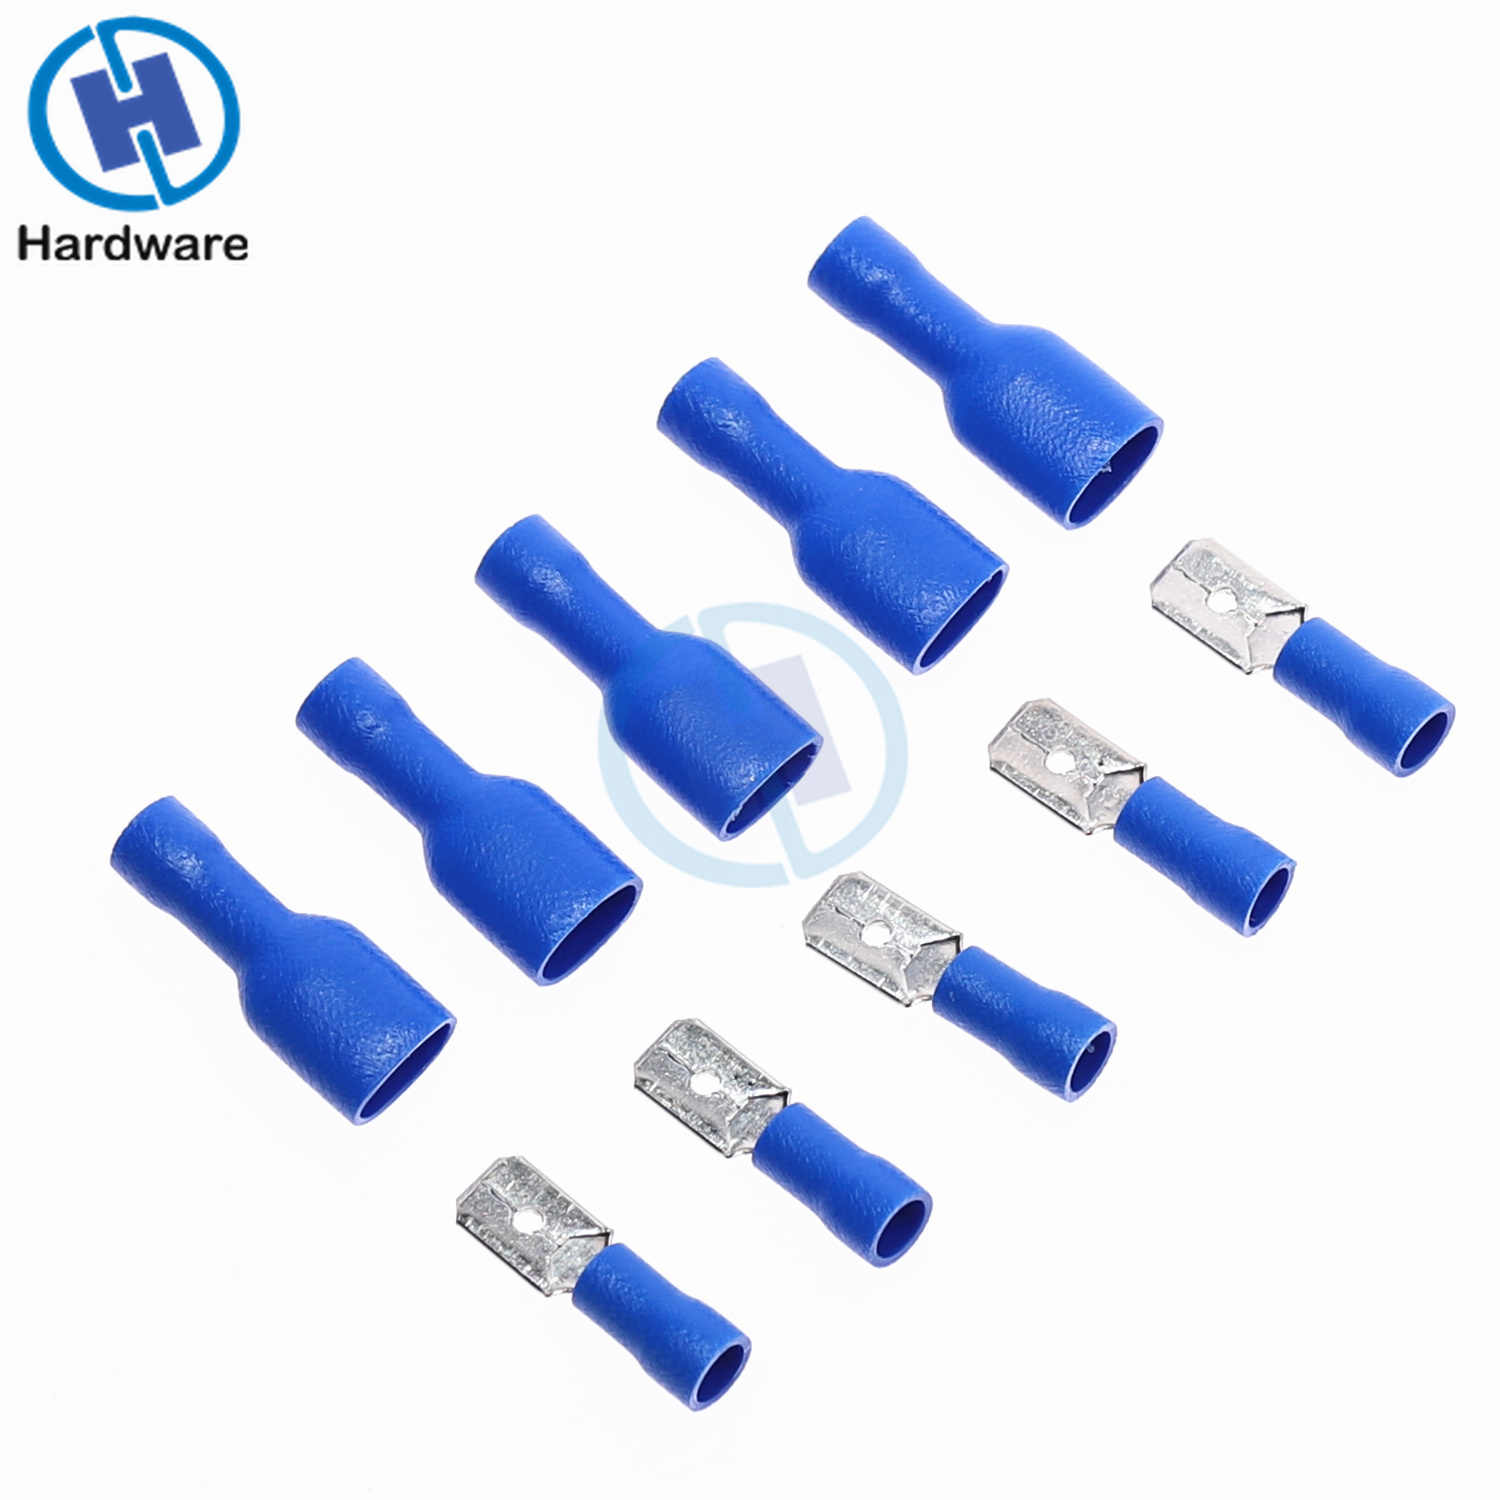 25 INSULATED ELECTRICAL WIRE TERMINAL CRIMP CONNECTOR SPADE KIT 16-14AWG BLUE